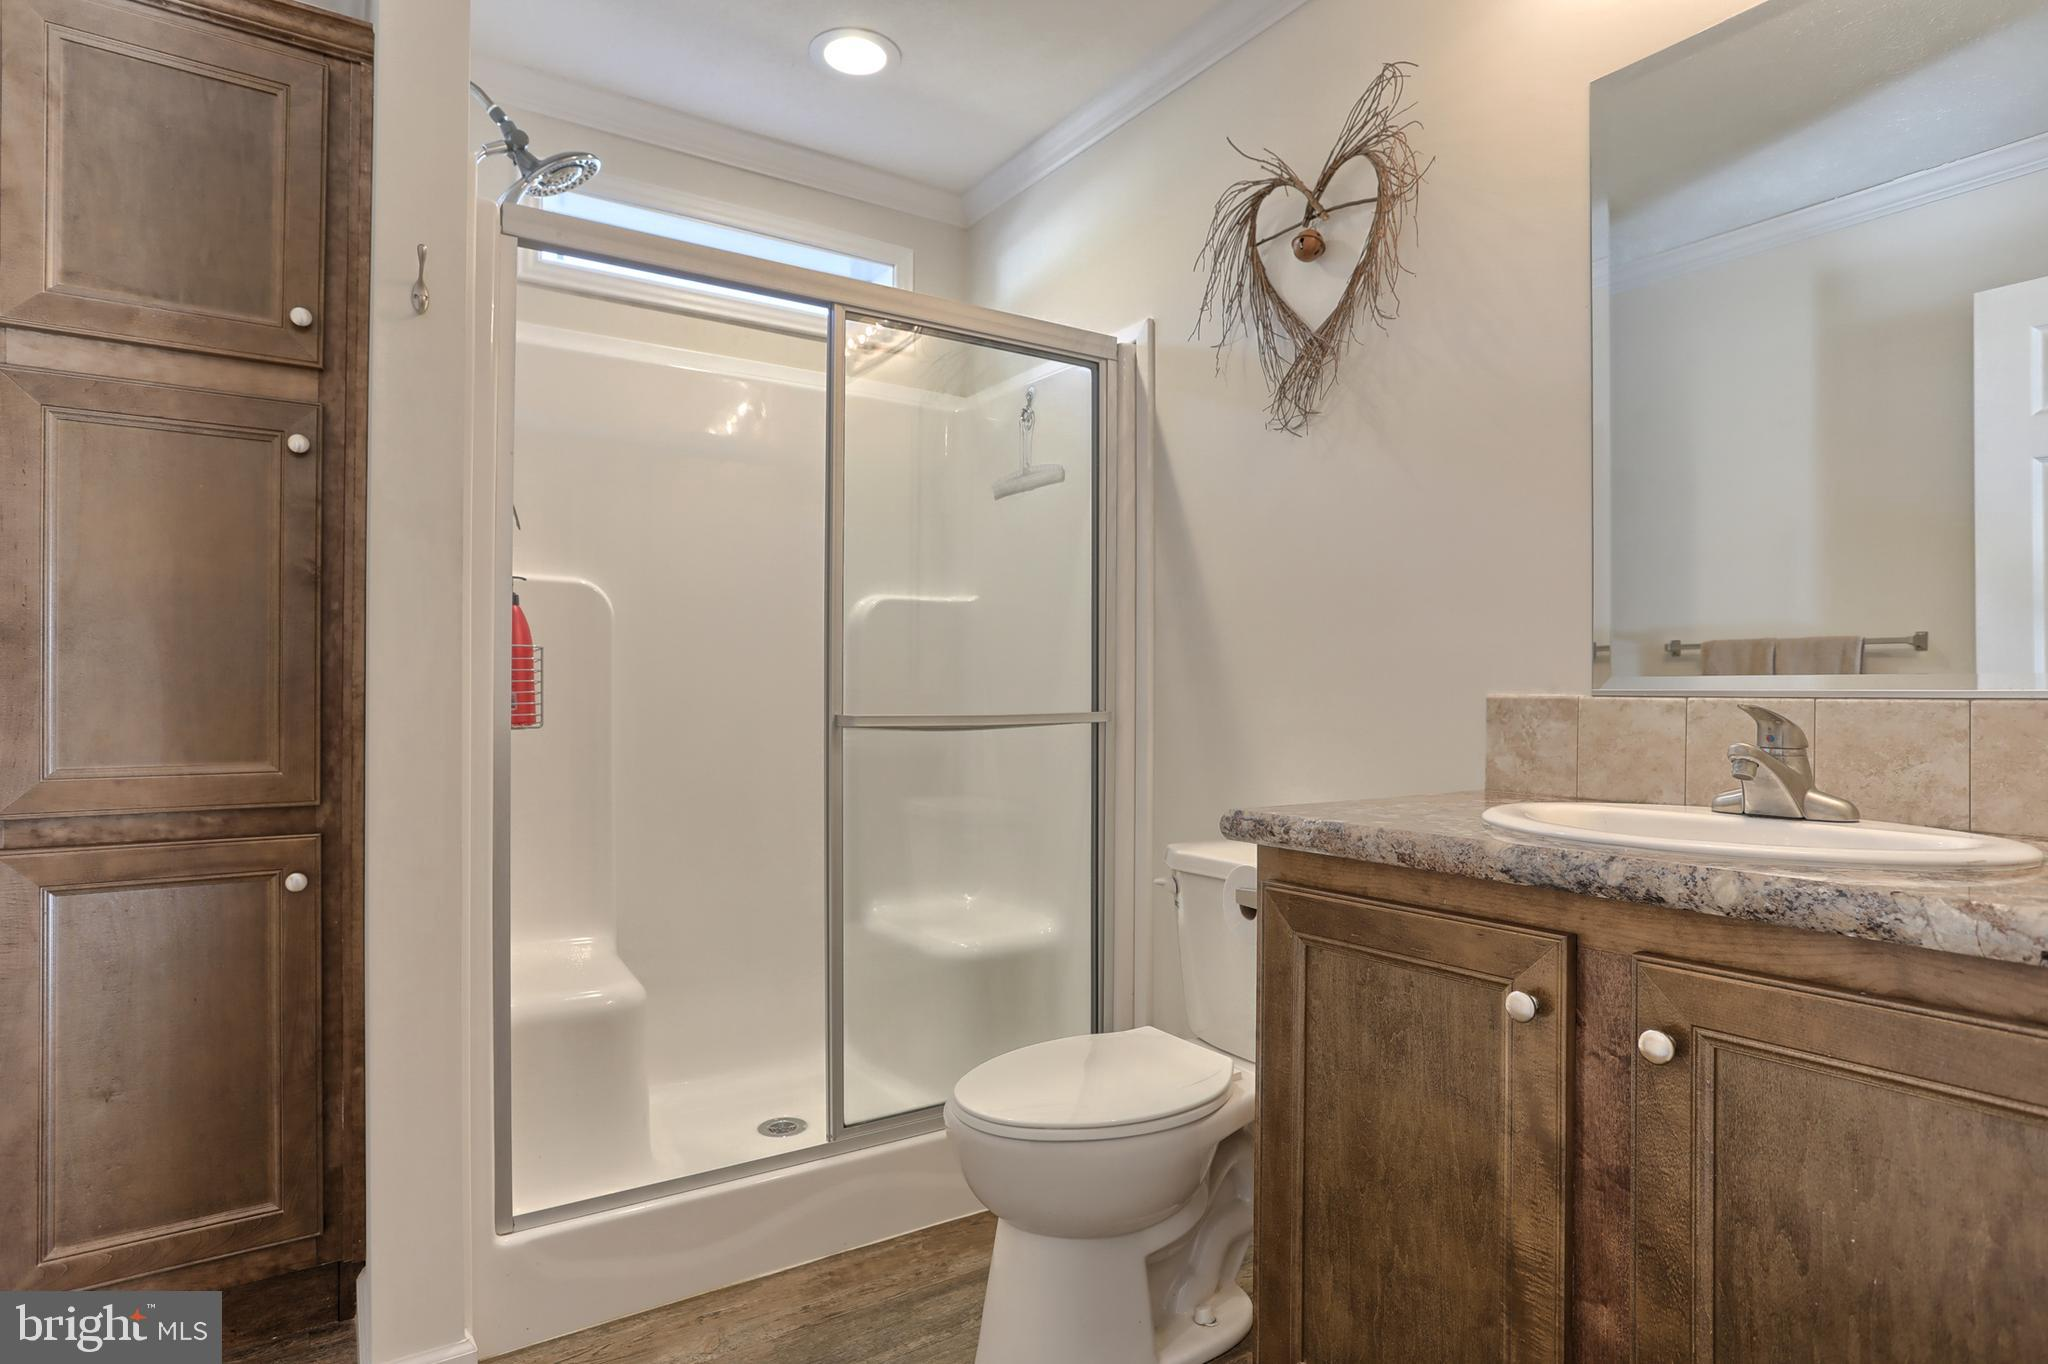 Second full bath with shower stall